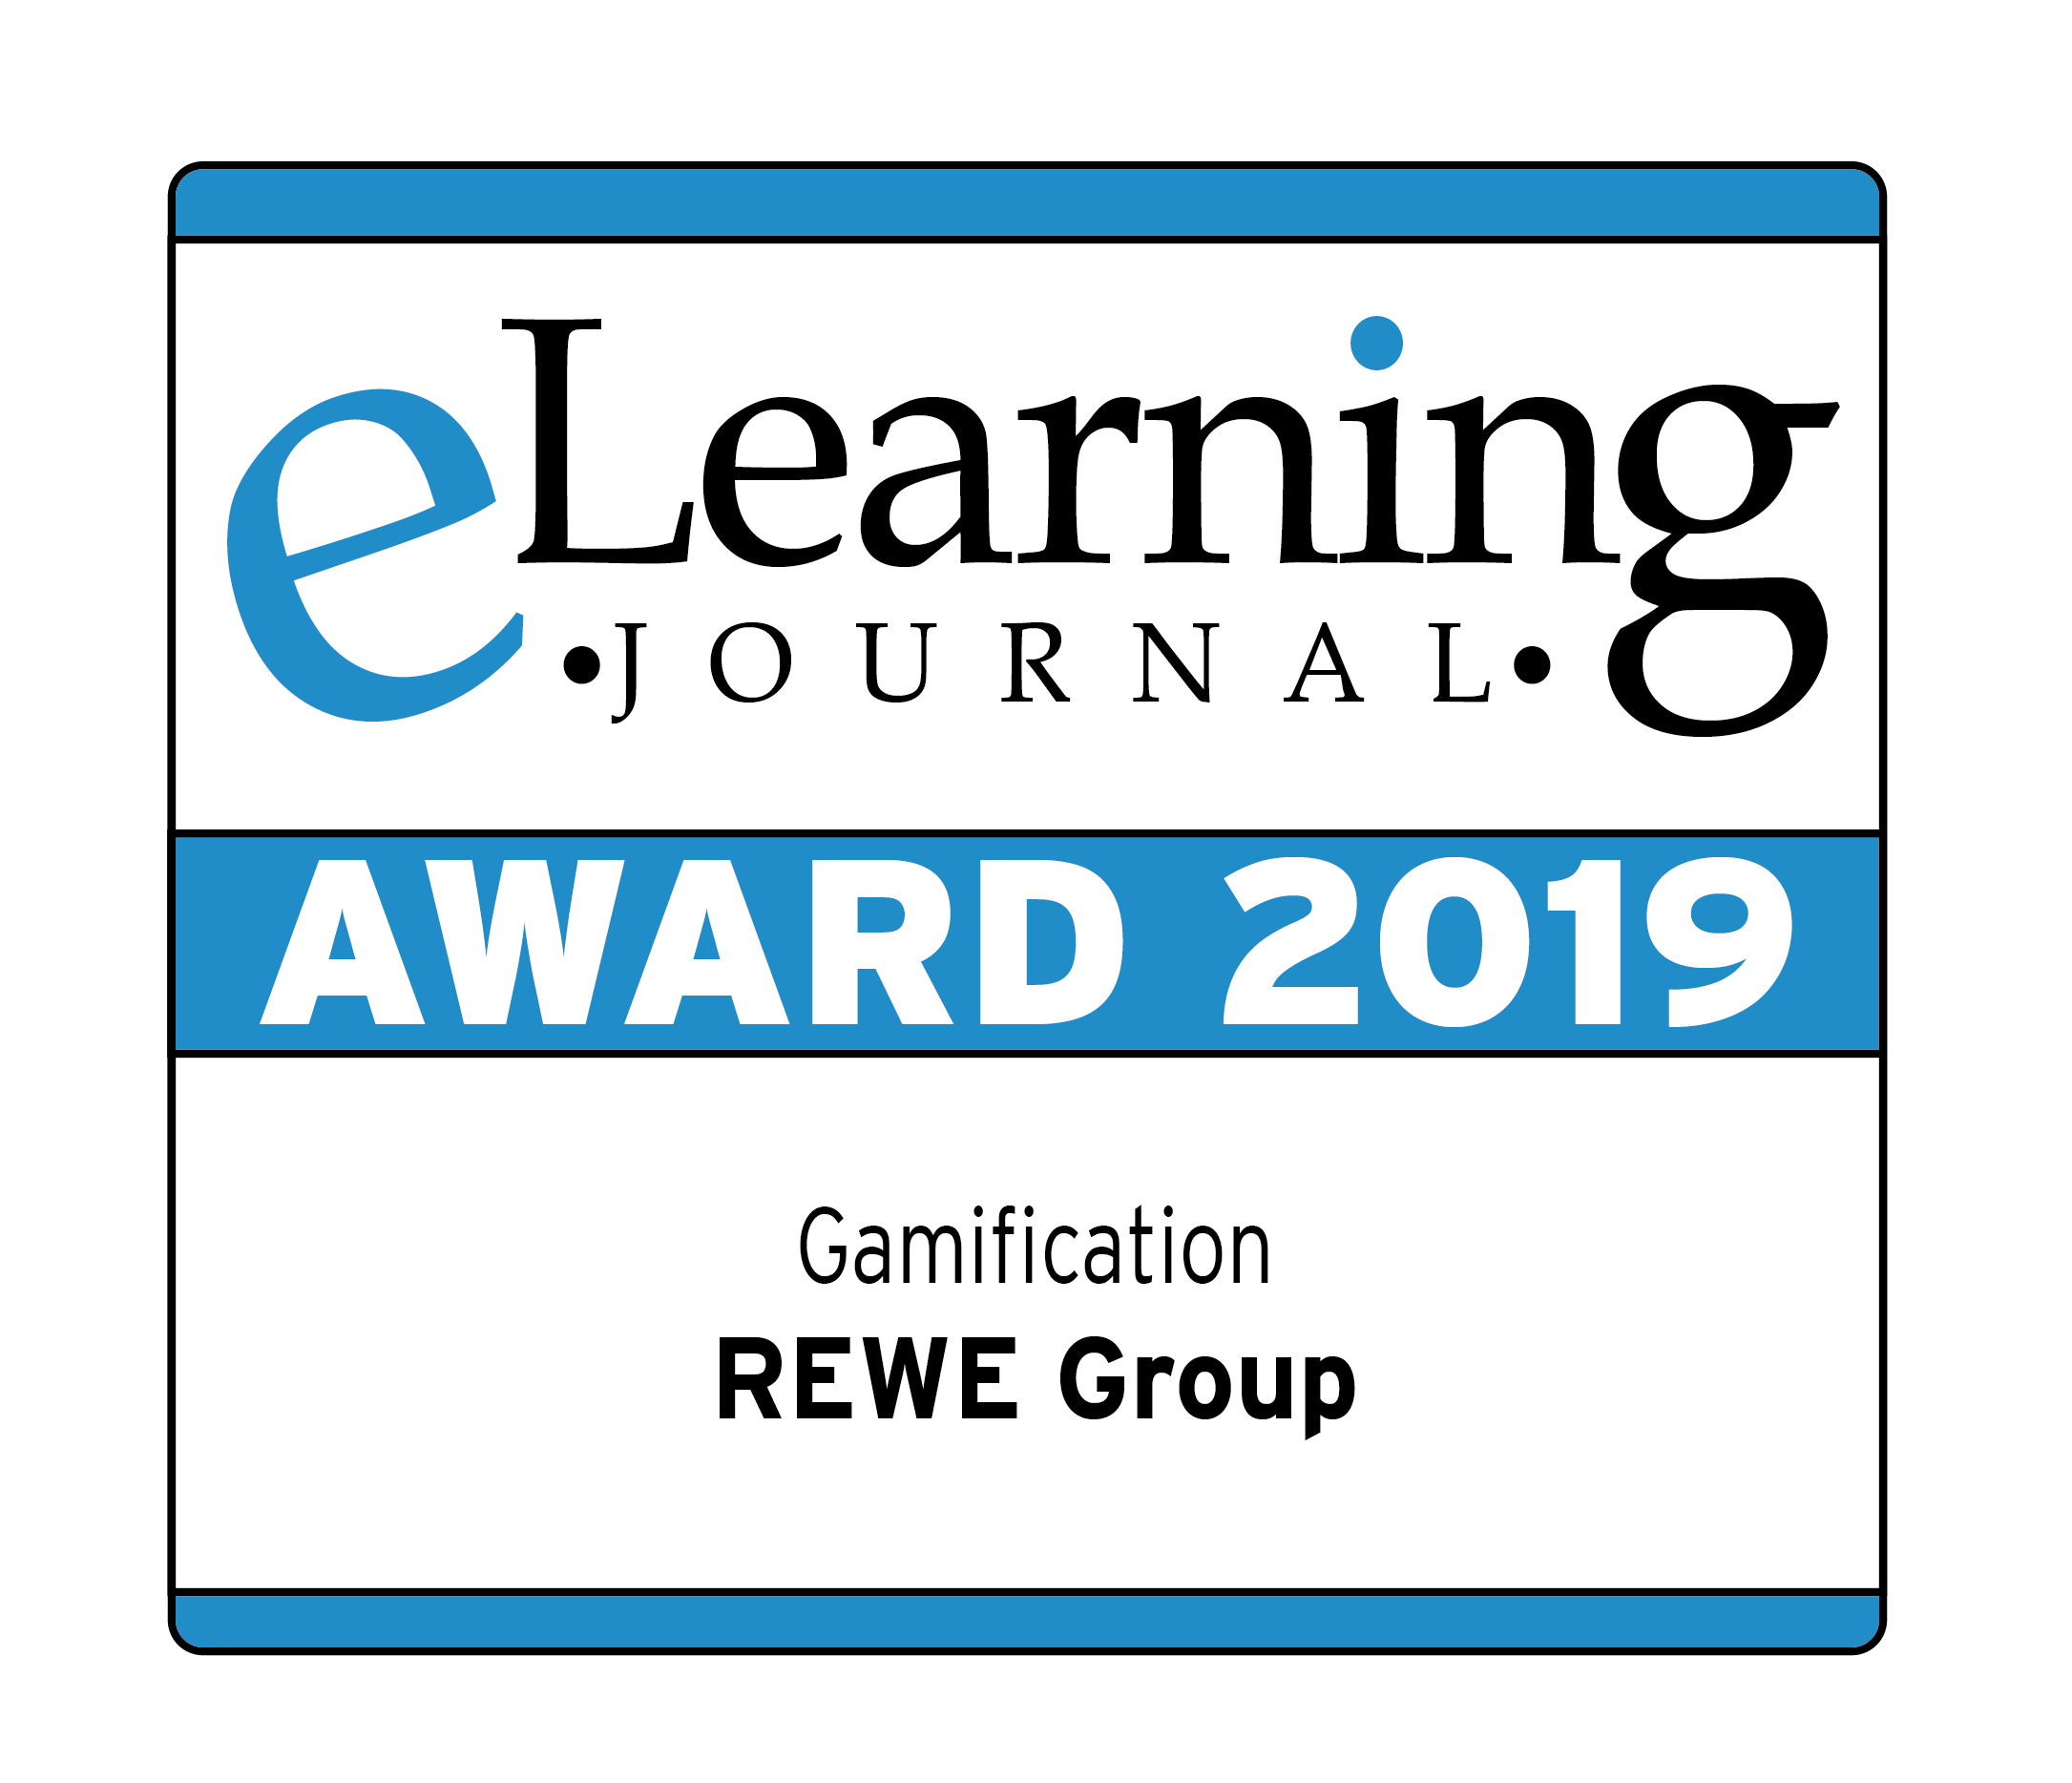 eLJ_AWARD2019_Gamification_REWEGroup.png